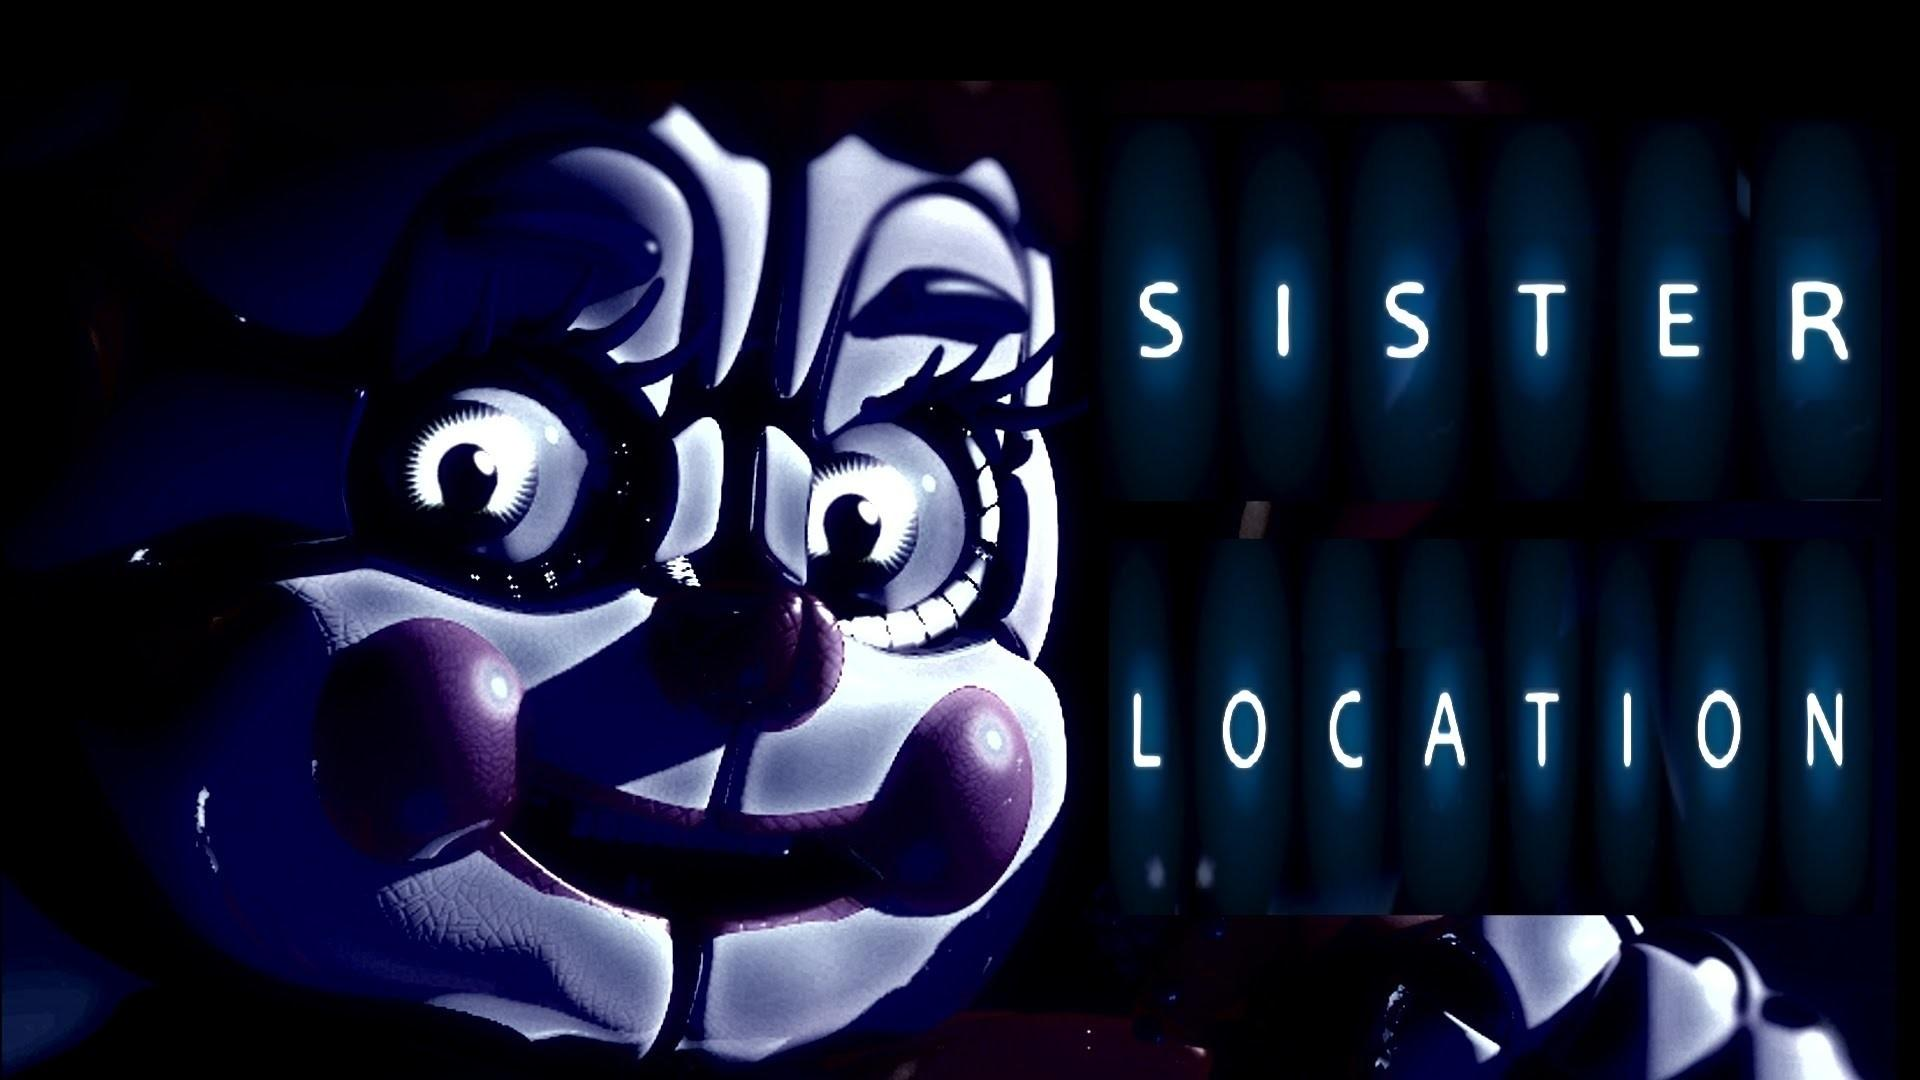 Fnaf Sister Location Wallpapers Wallpaper Cave